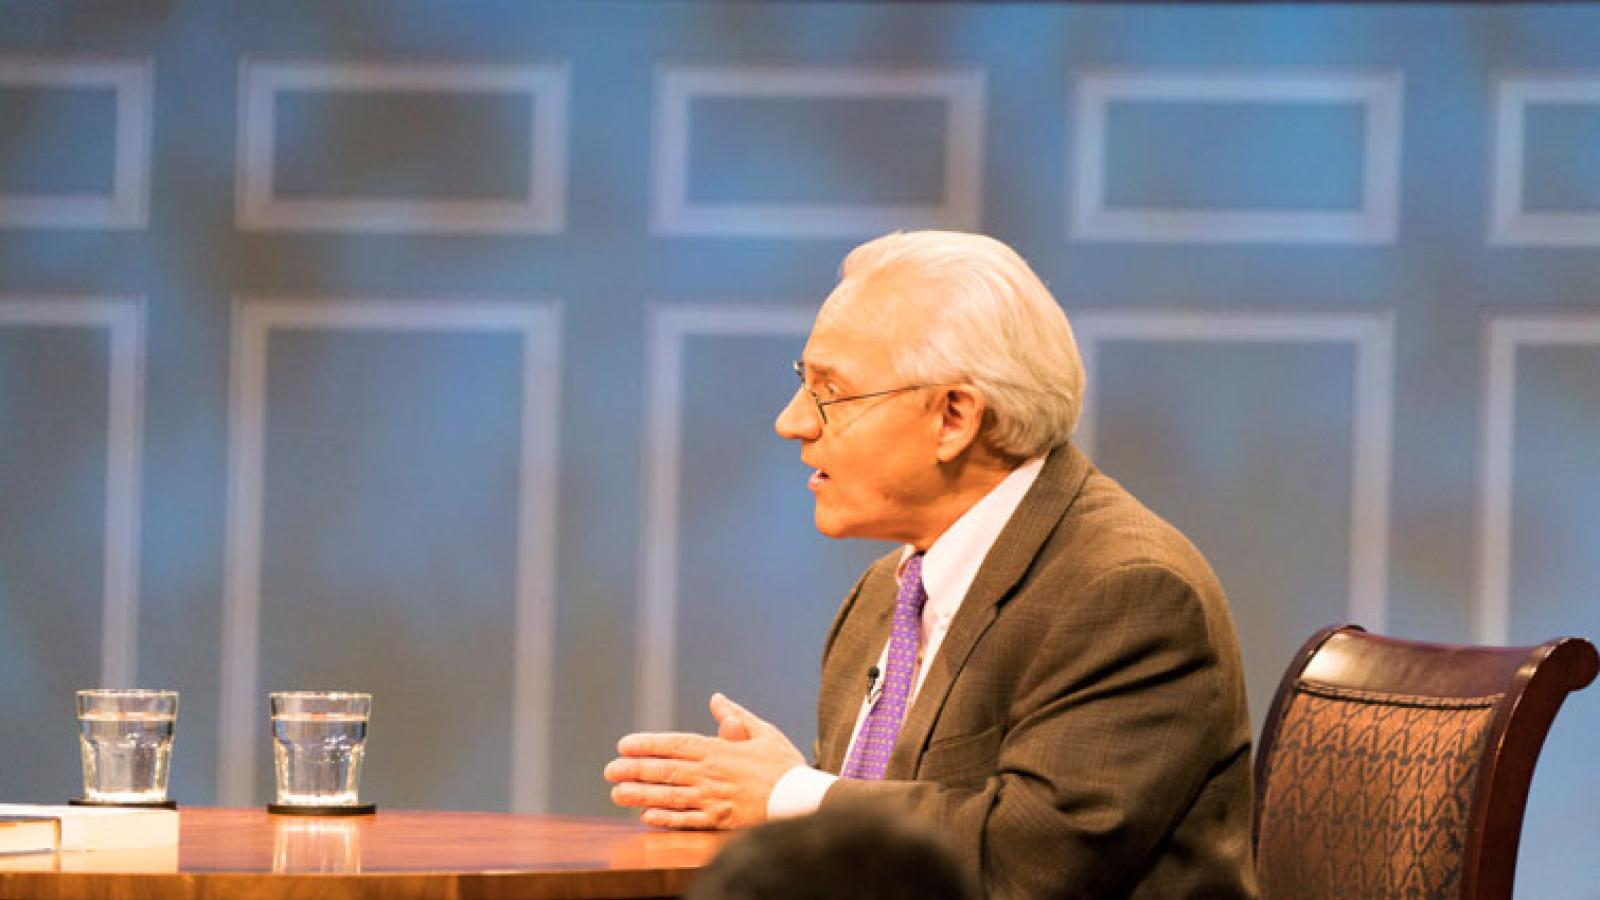 Washington Post columnist E.J. Dionne takes questions on the early days of the Trump Presidency from the American Forum studio audience